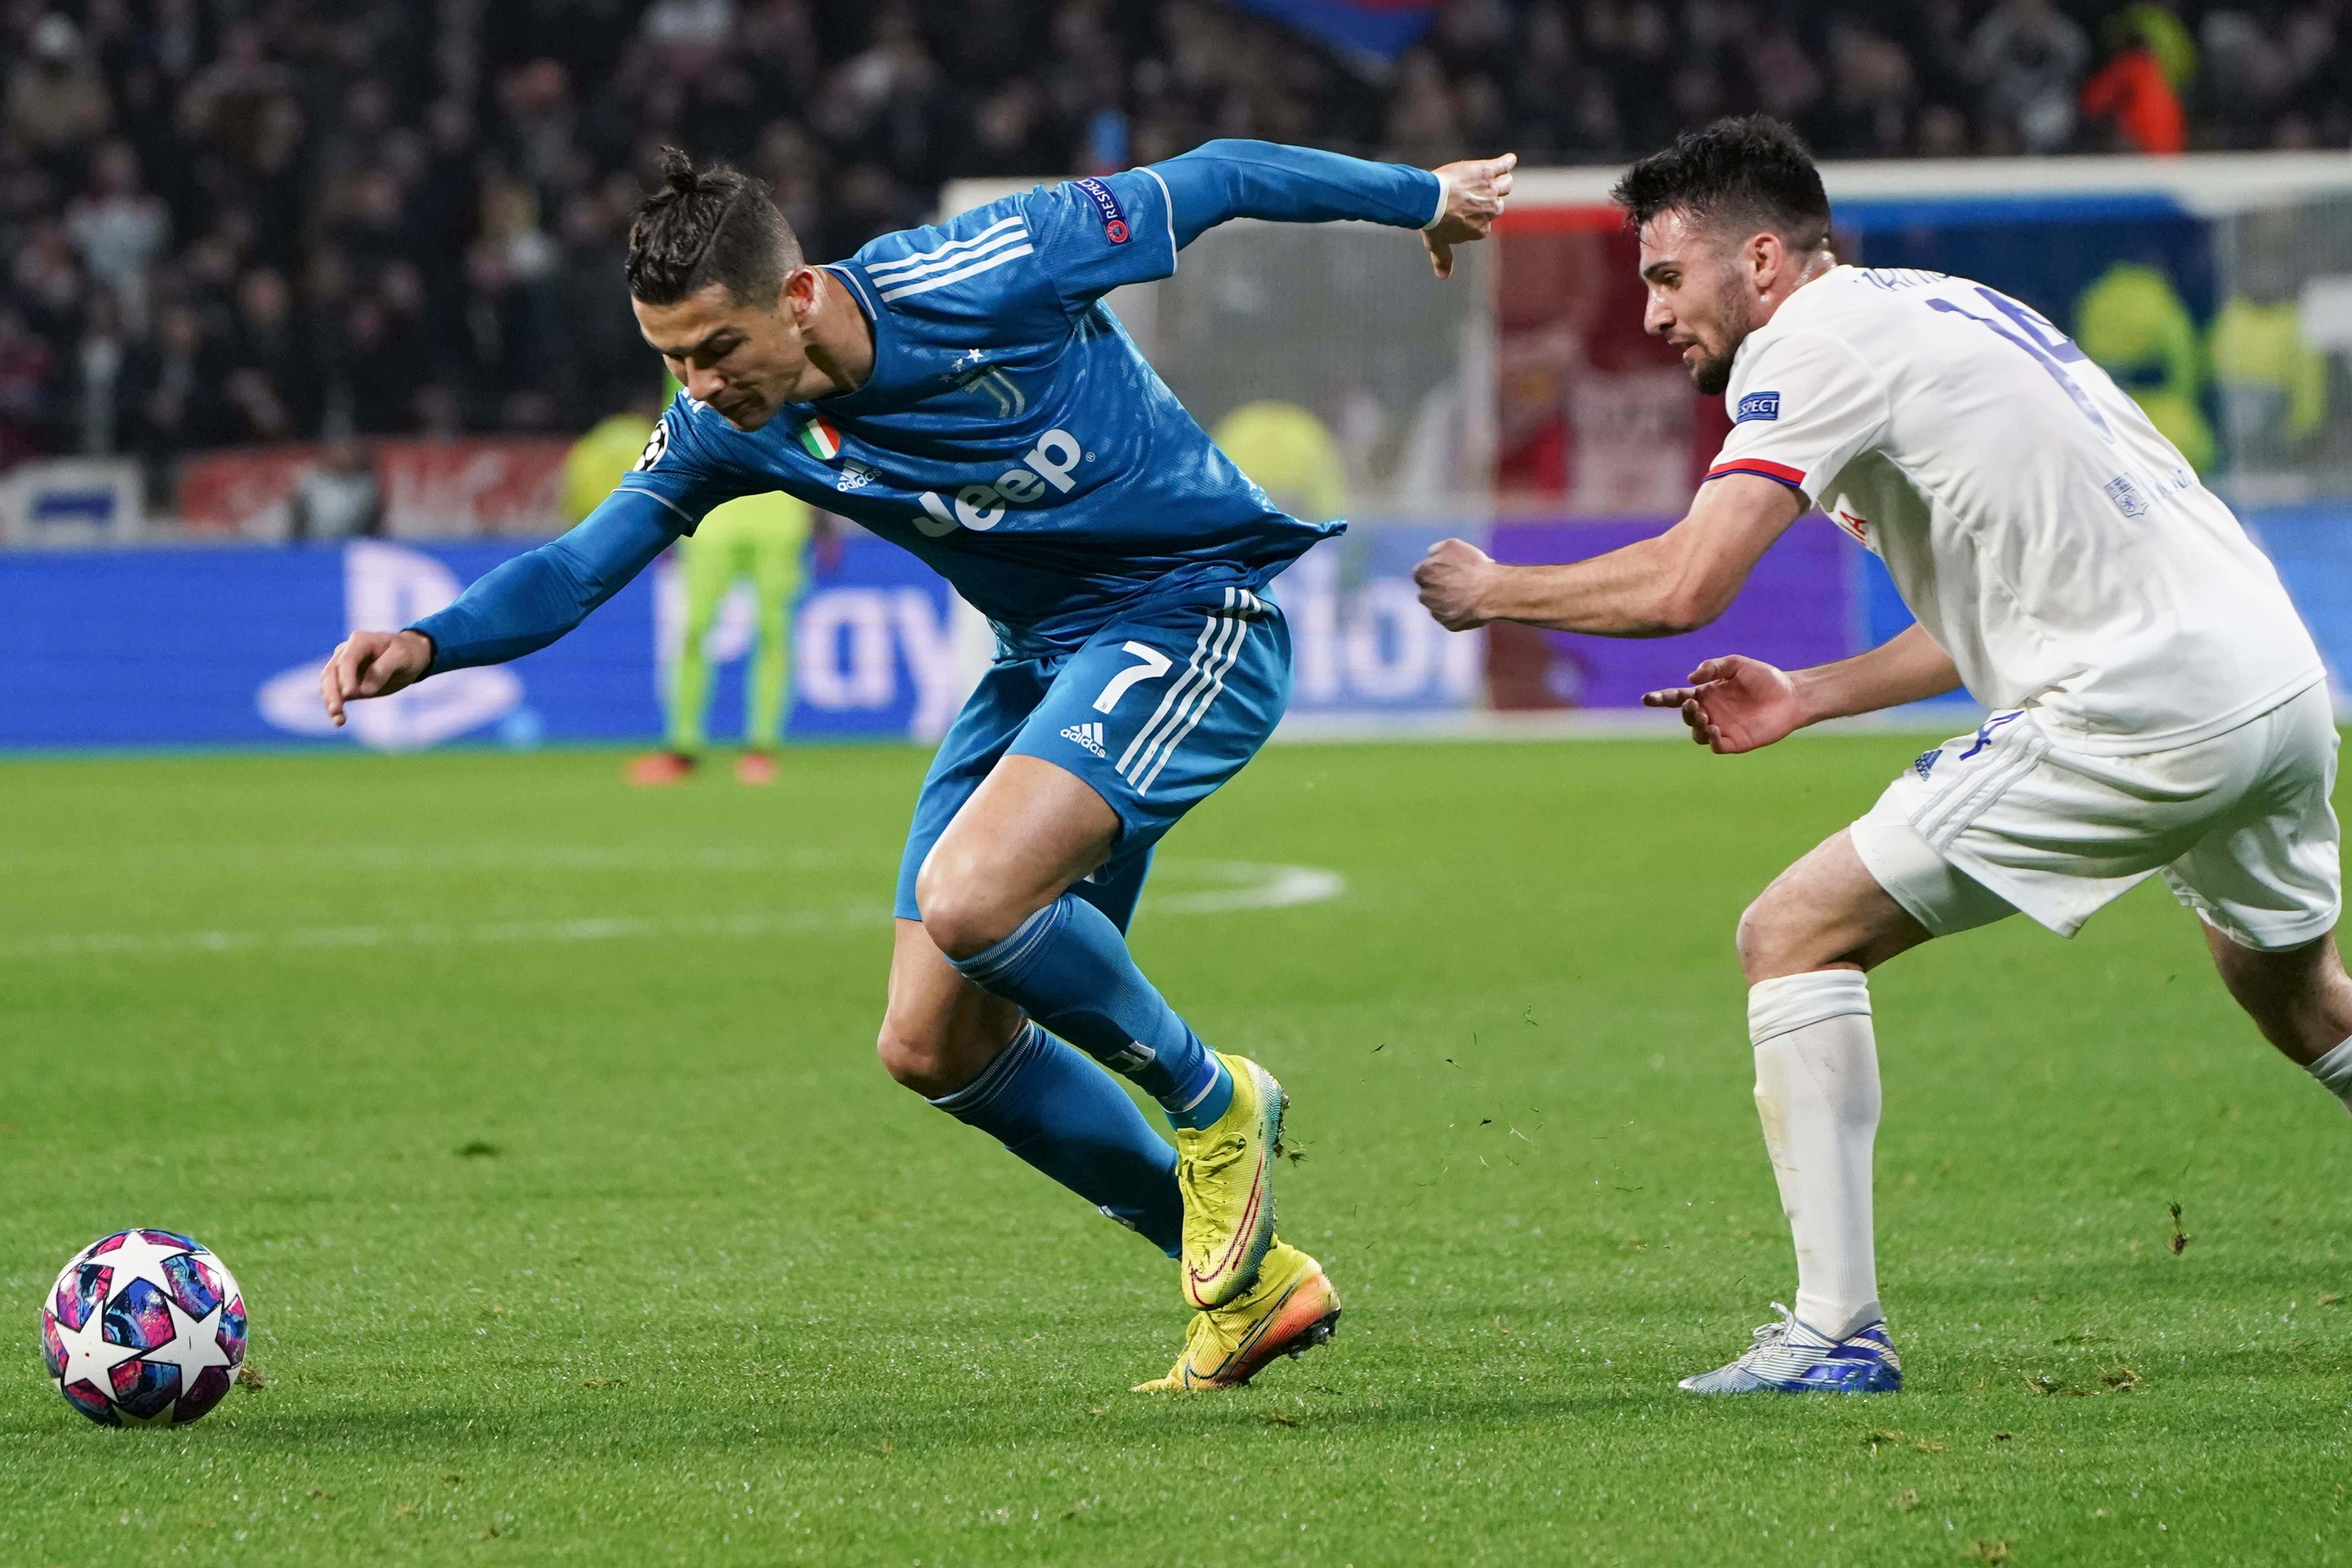 Lyon's Leo Dubois lets go of Juventus' Cristiano Ronaldo's shirt after restraining him during a round of sixteen, first leg, soccer match between Lyon and Juventus at the at the Lyon Olympic Stadium in Decines, outside Lyon, France